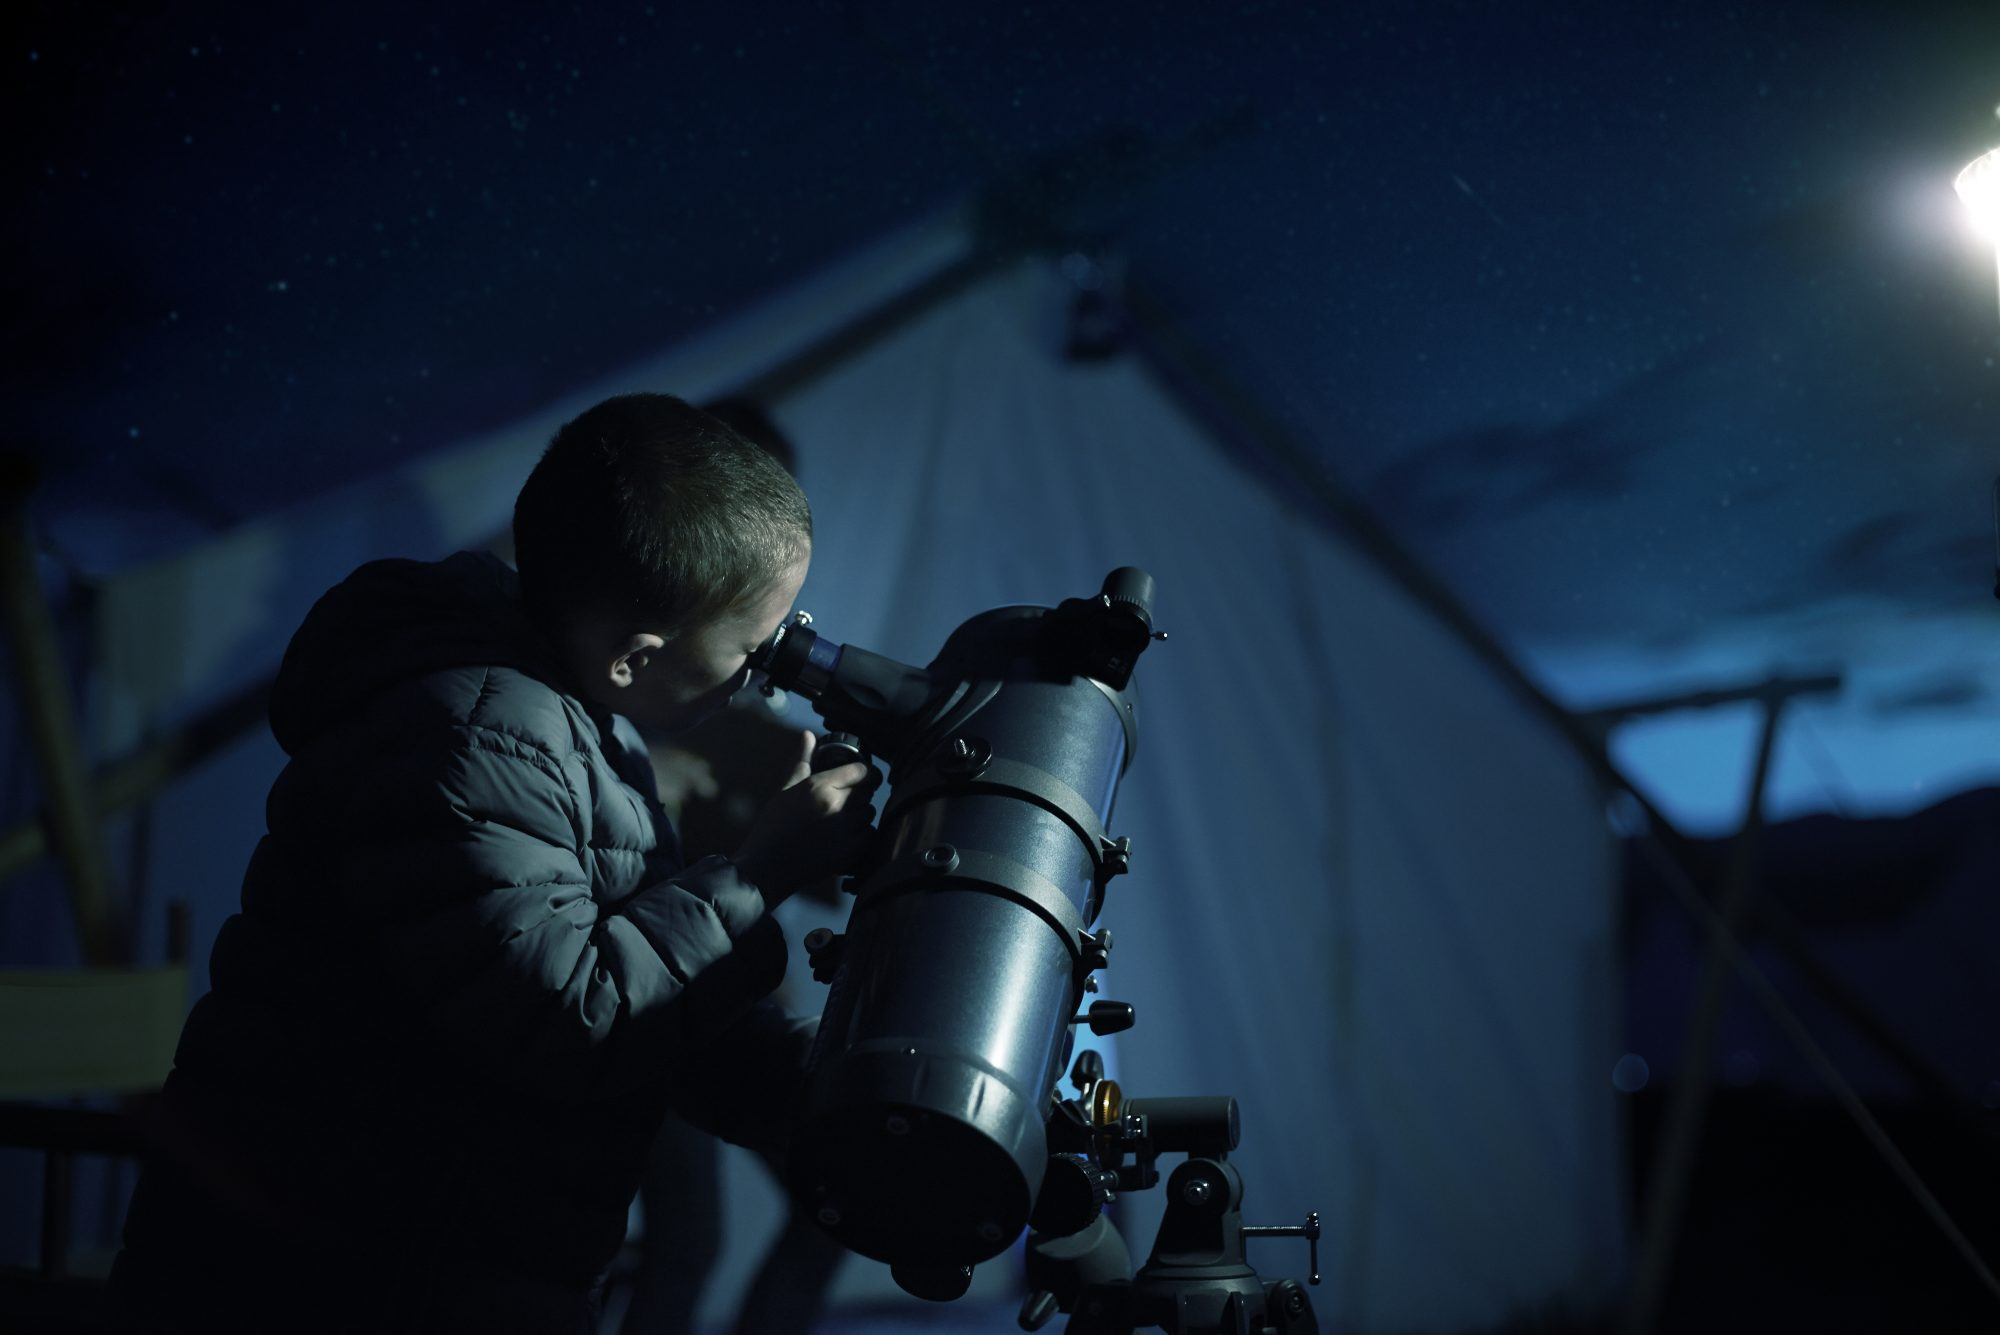 boy looking though telescope at night